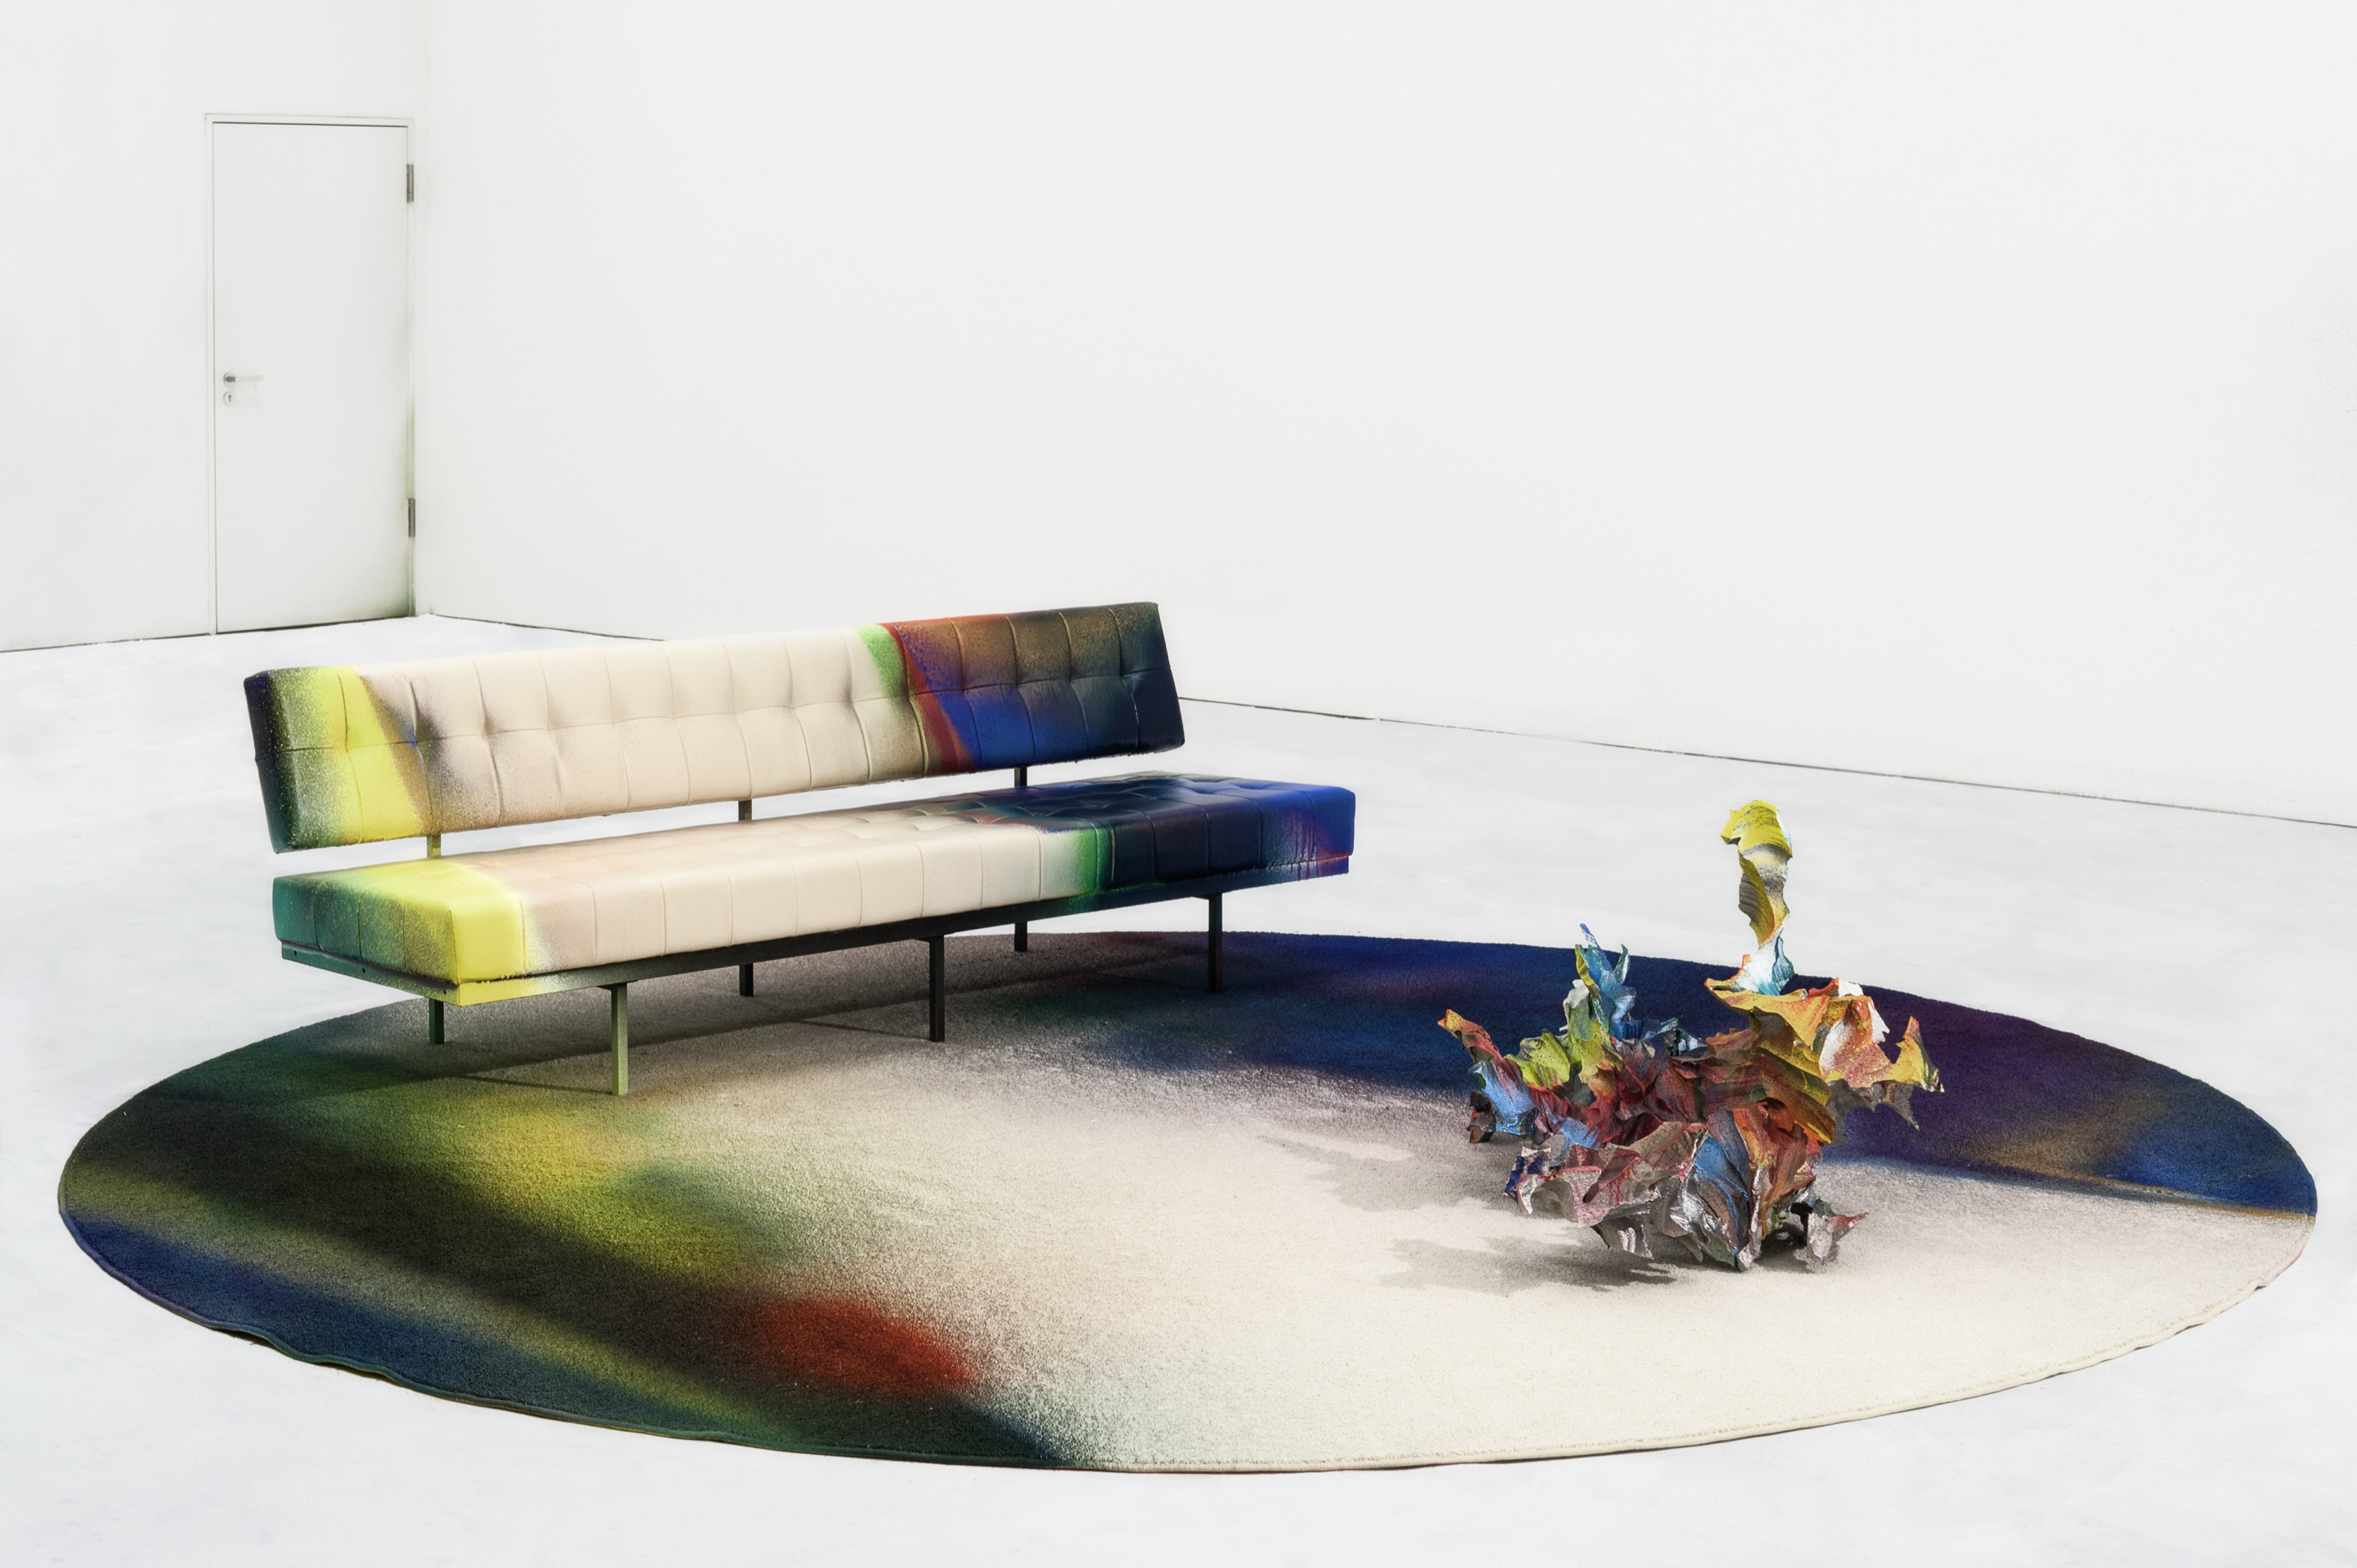 Sofa Größe snakes lie between and the shore katharina grosse